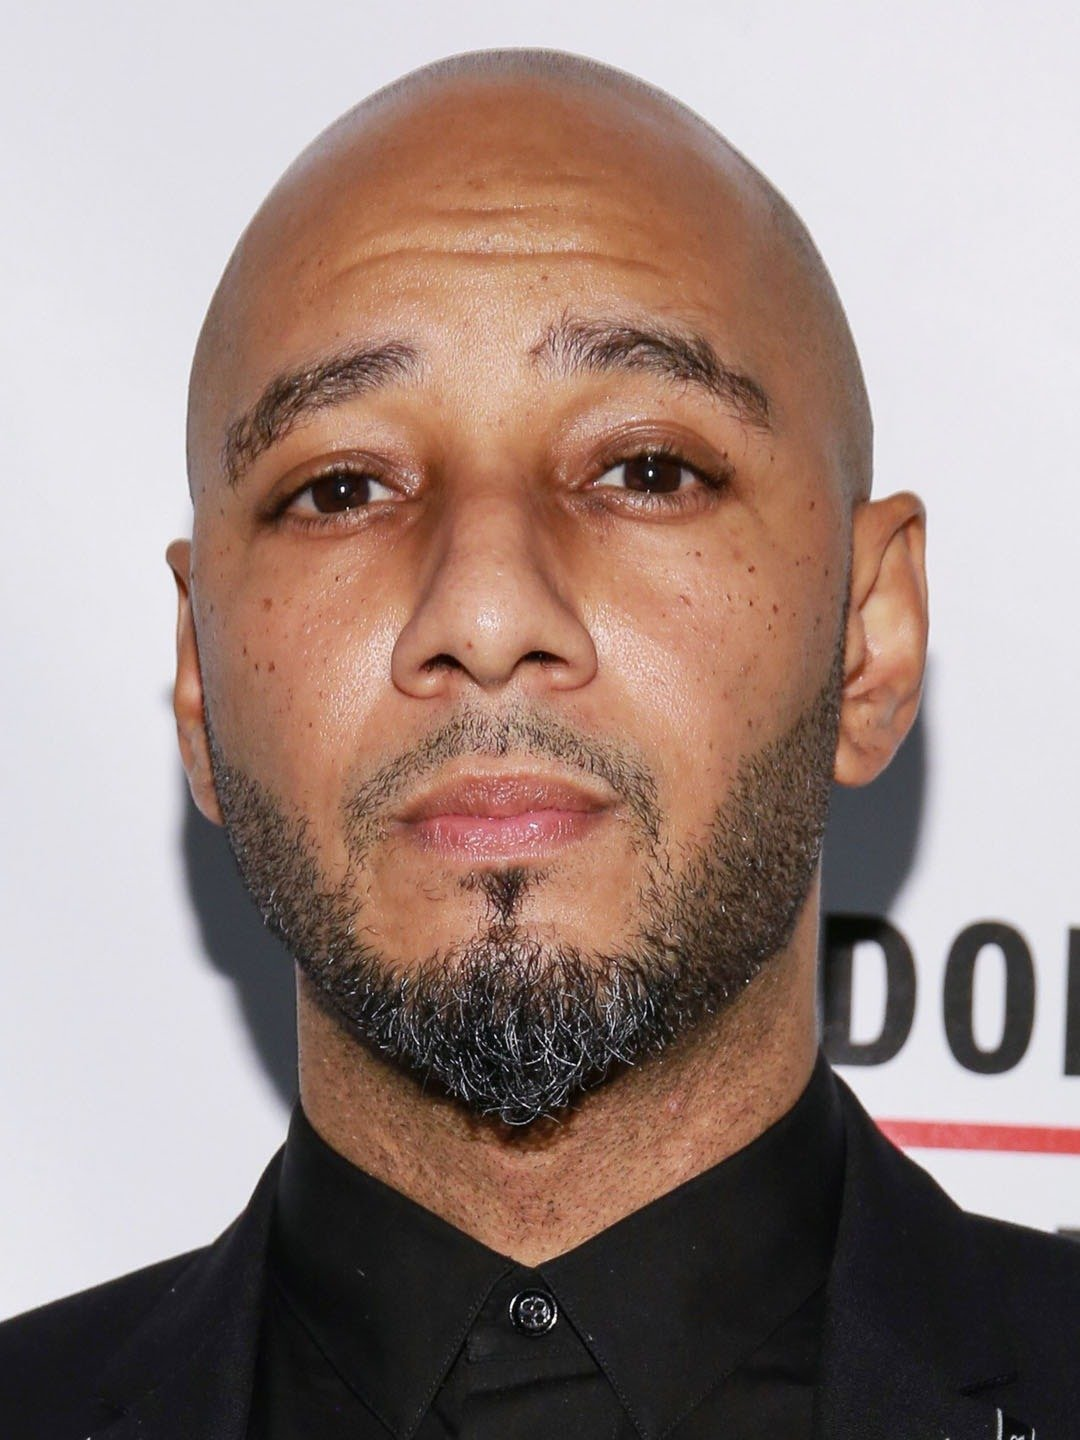 Swizz Beatz Family Photos, Siblings, Father, Wife, Age, Parents, Children